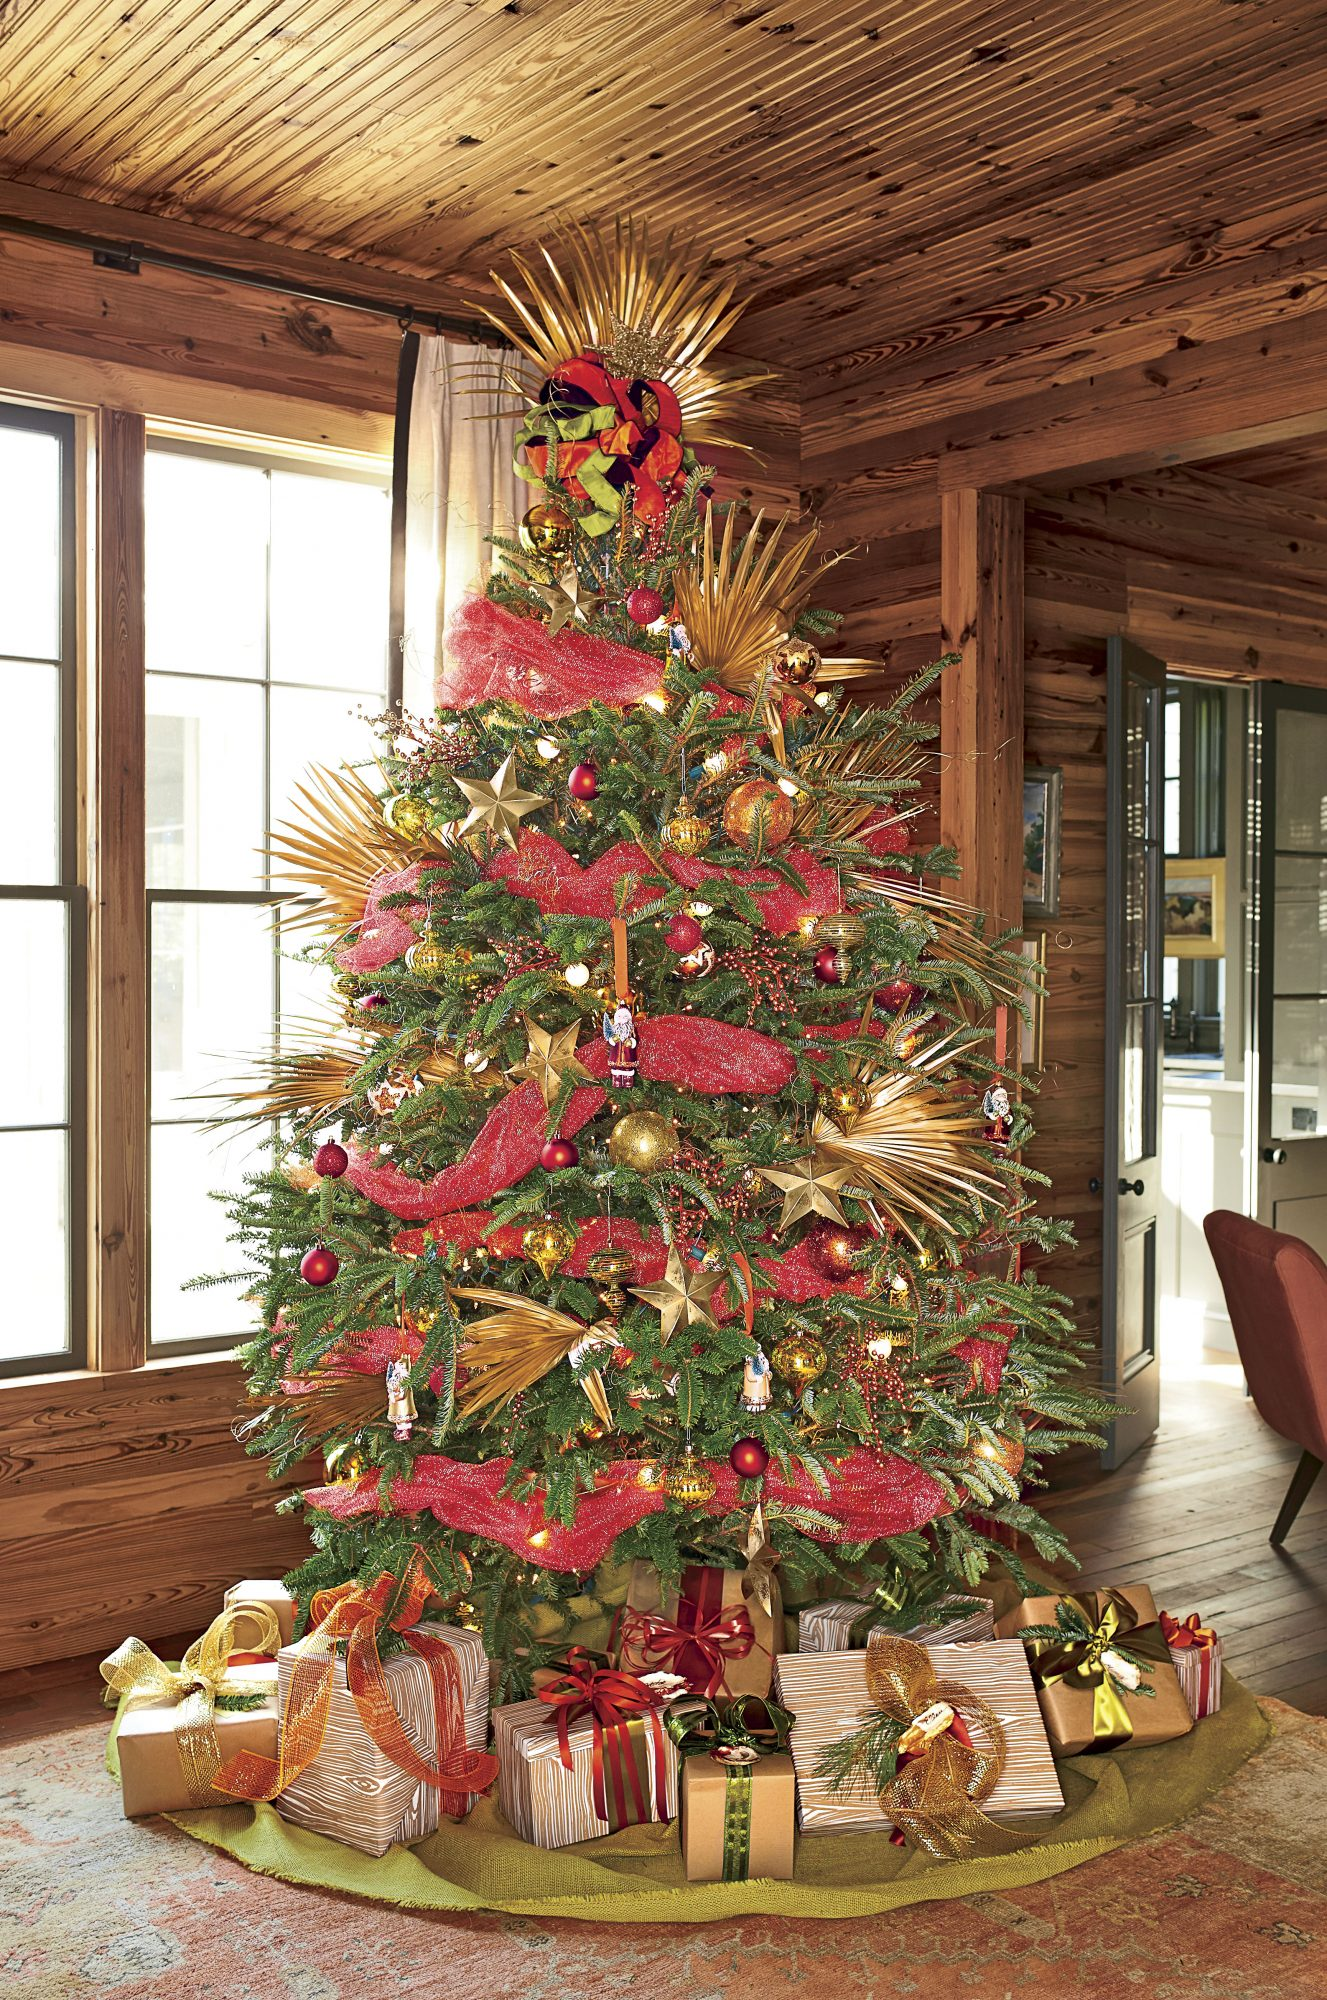 16 Christmas Tree Ribbon Ideas For a Spirited Display ...